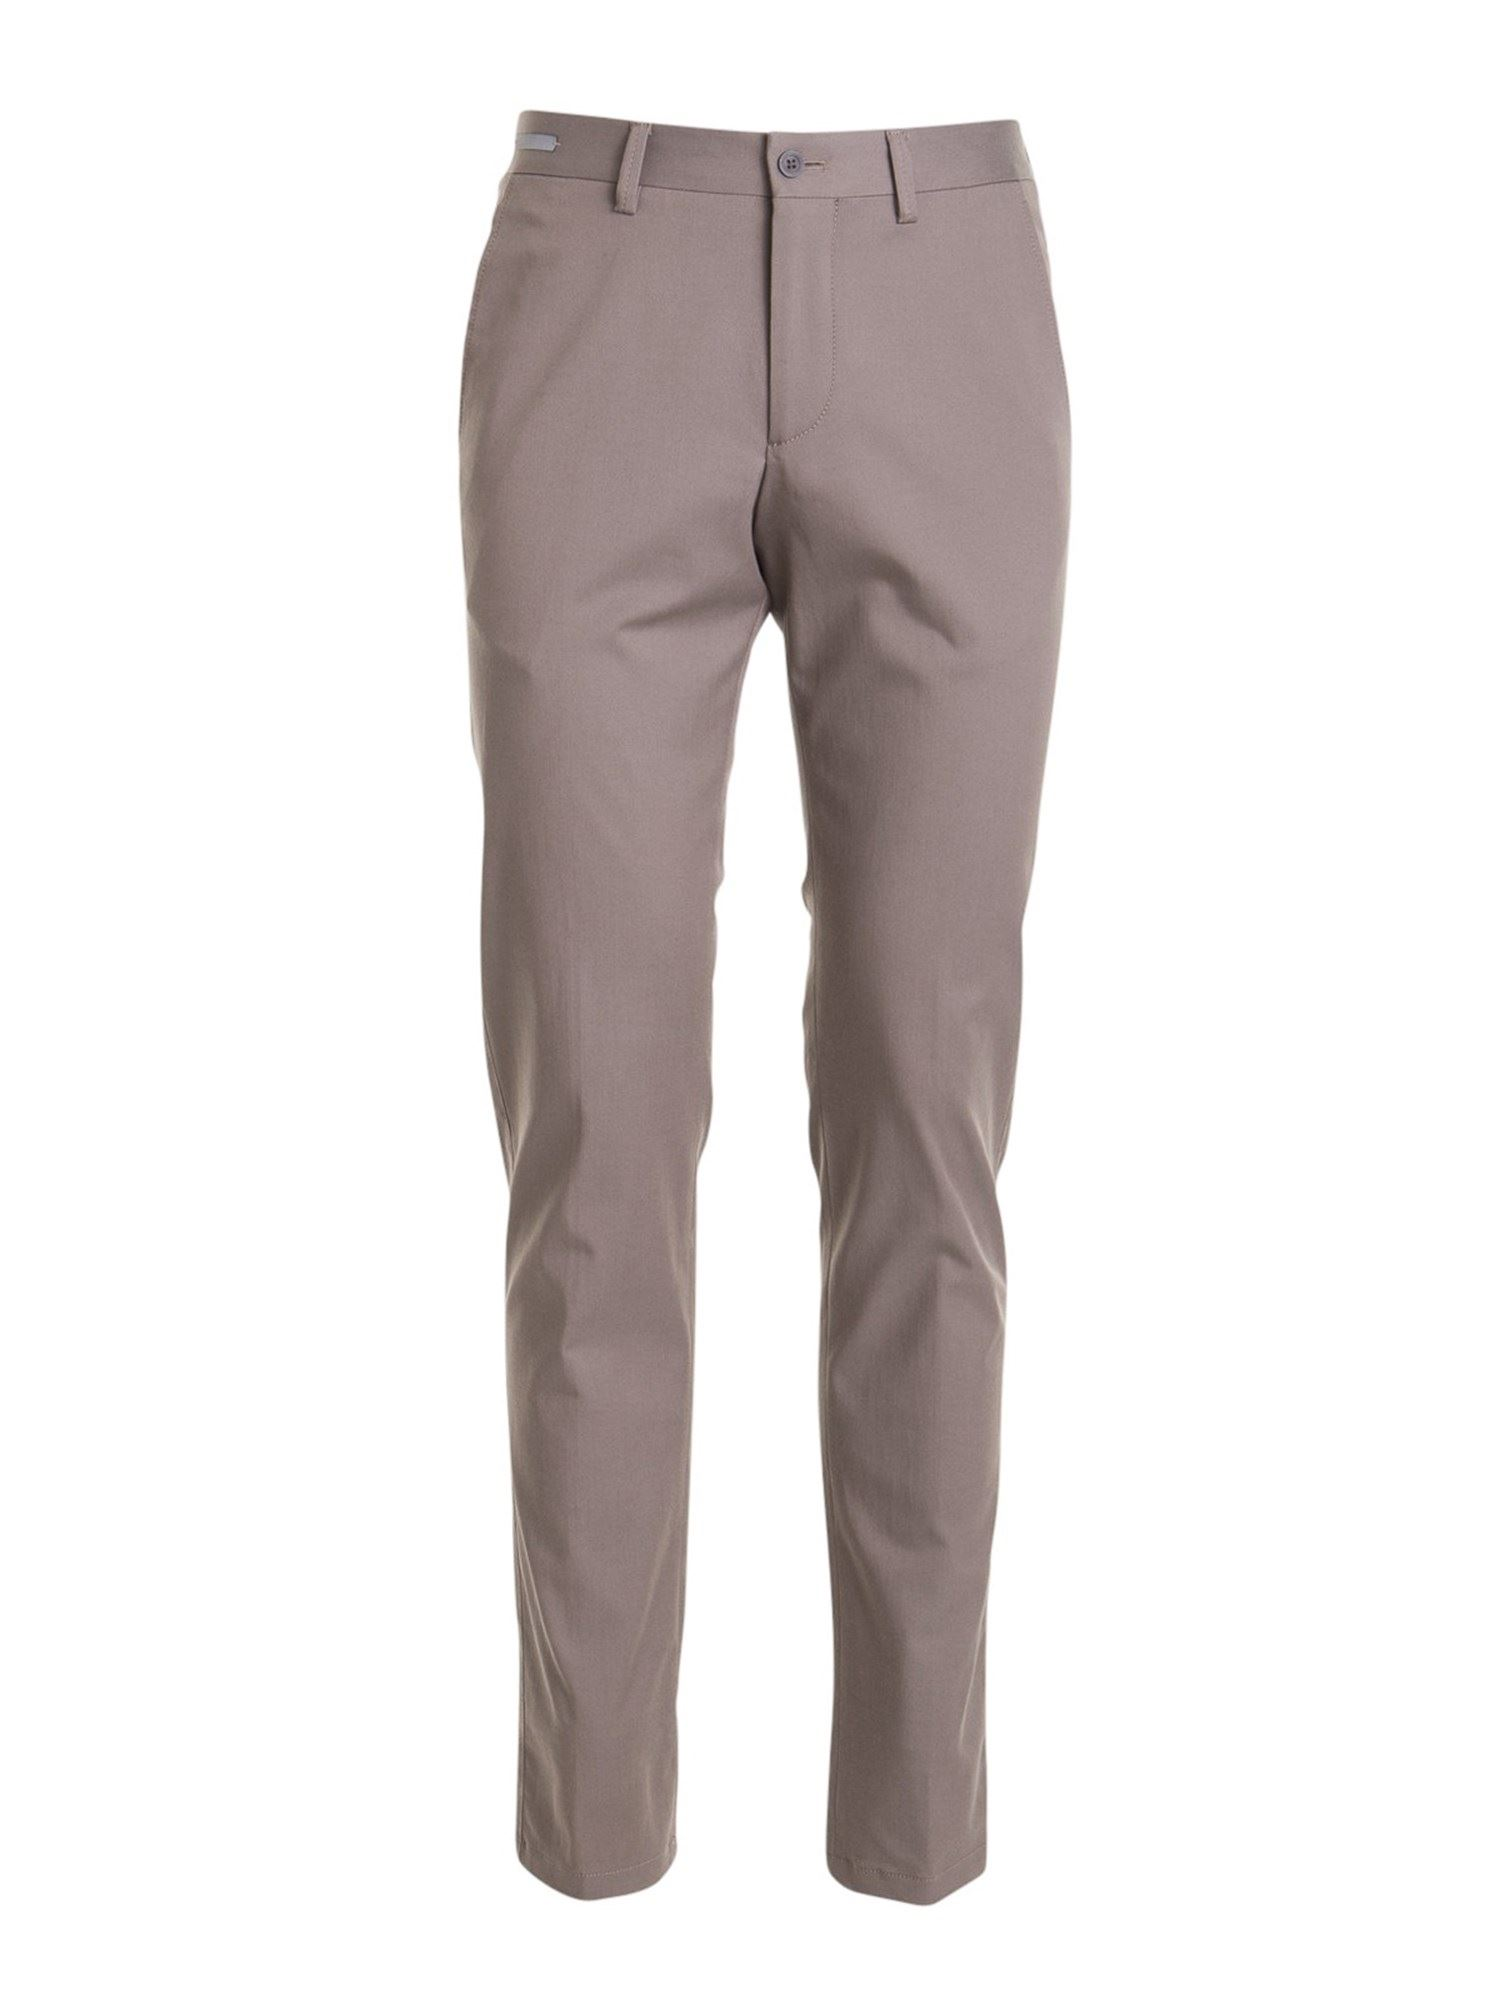 Corneliani BEIGE COTTON BLEND TROUSERS